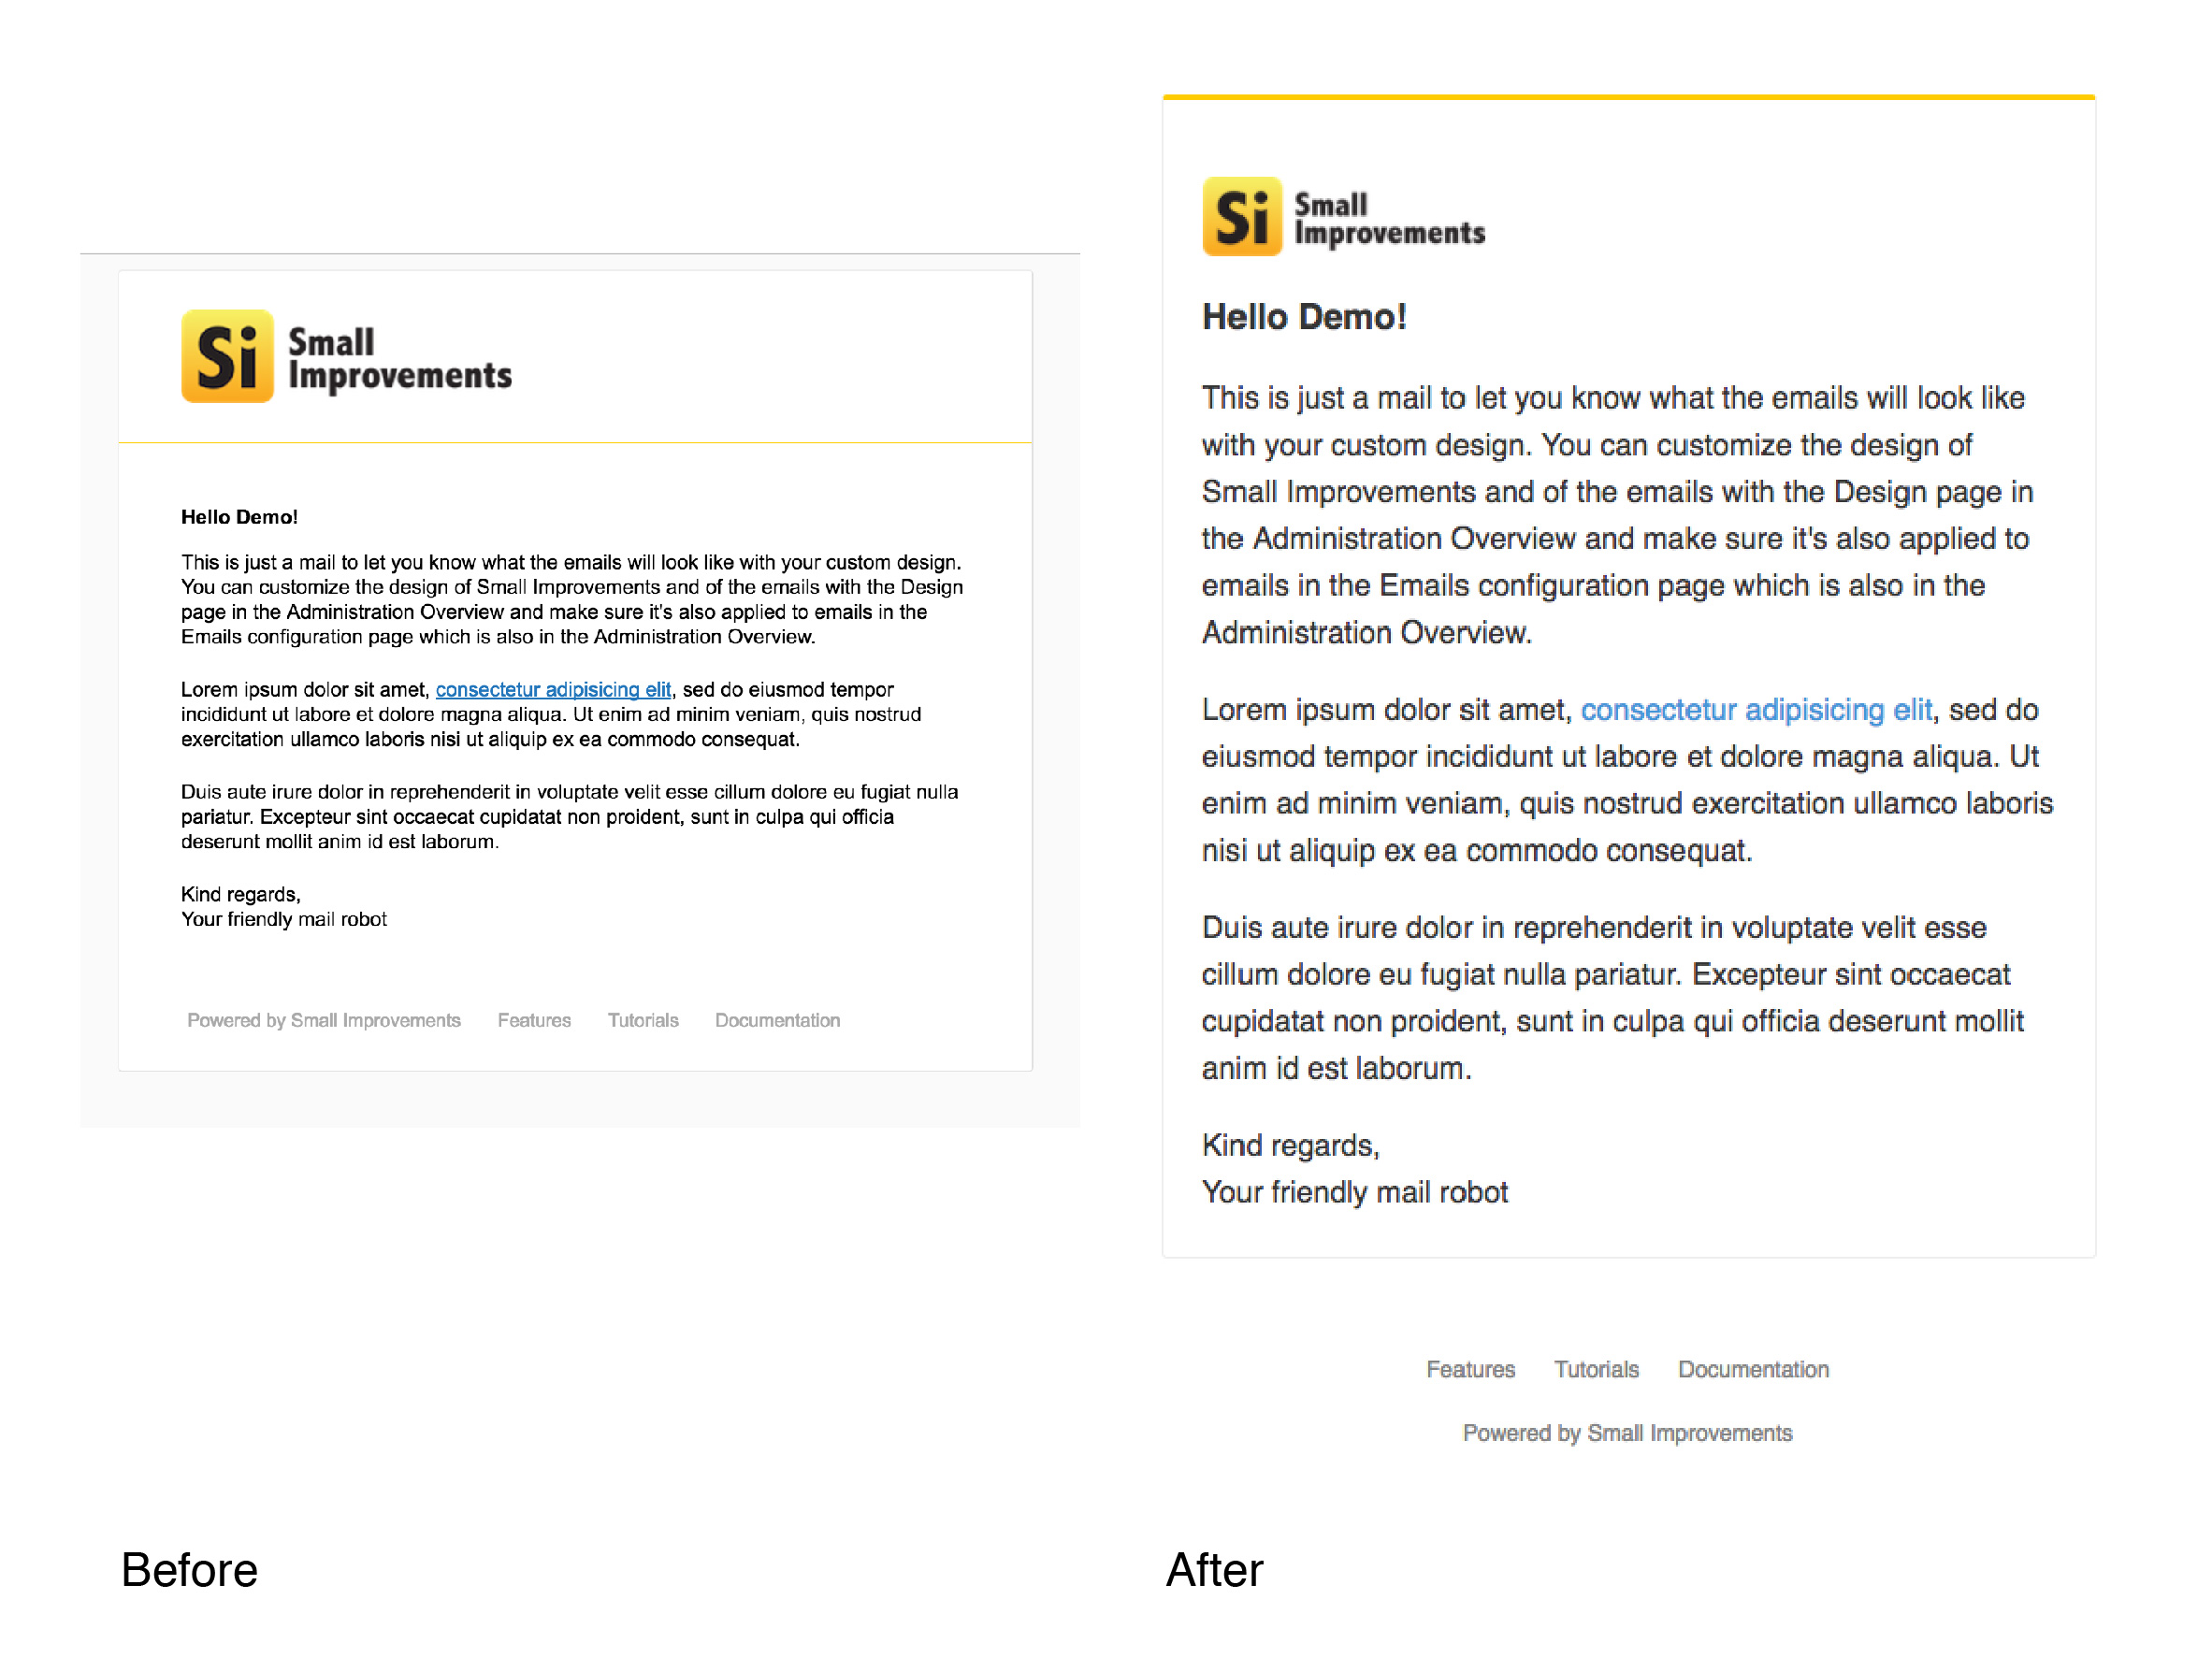 email-blogpost--before-after-01.jpg